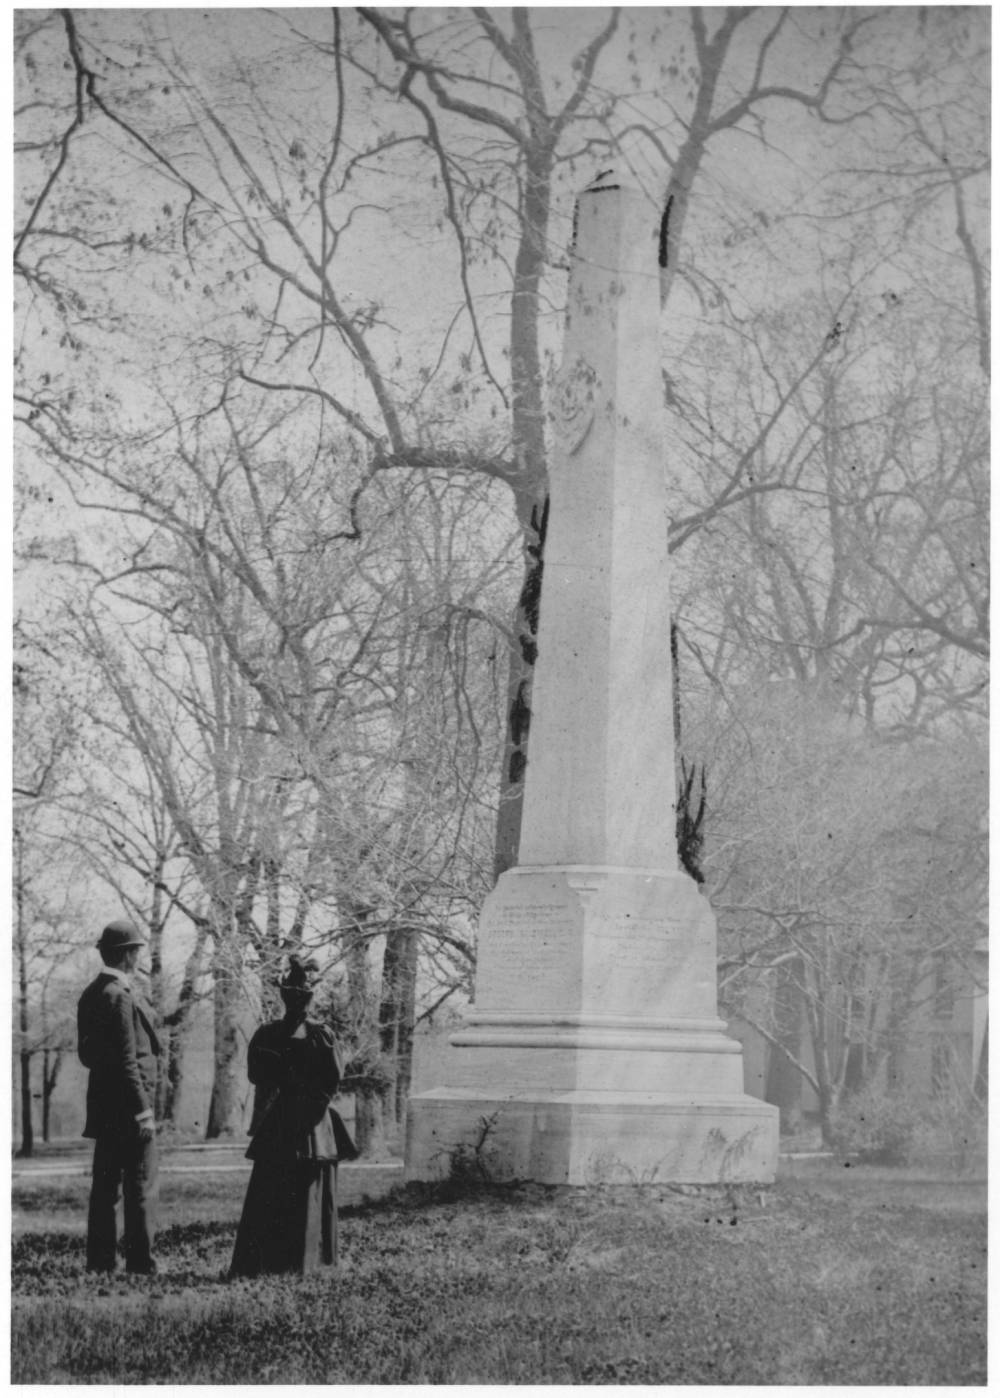 """Caldwell Monument, 1890-1939: Scan 1,"" in the University of North Carolina at Chapel Hill Image Collection Collection #P0004, North Carolina Collection Photographic Archives, The Wilson Library, University of North Carolina at Chapel Hill."